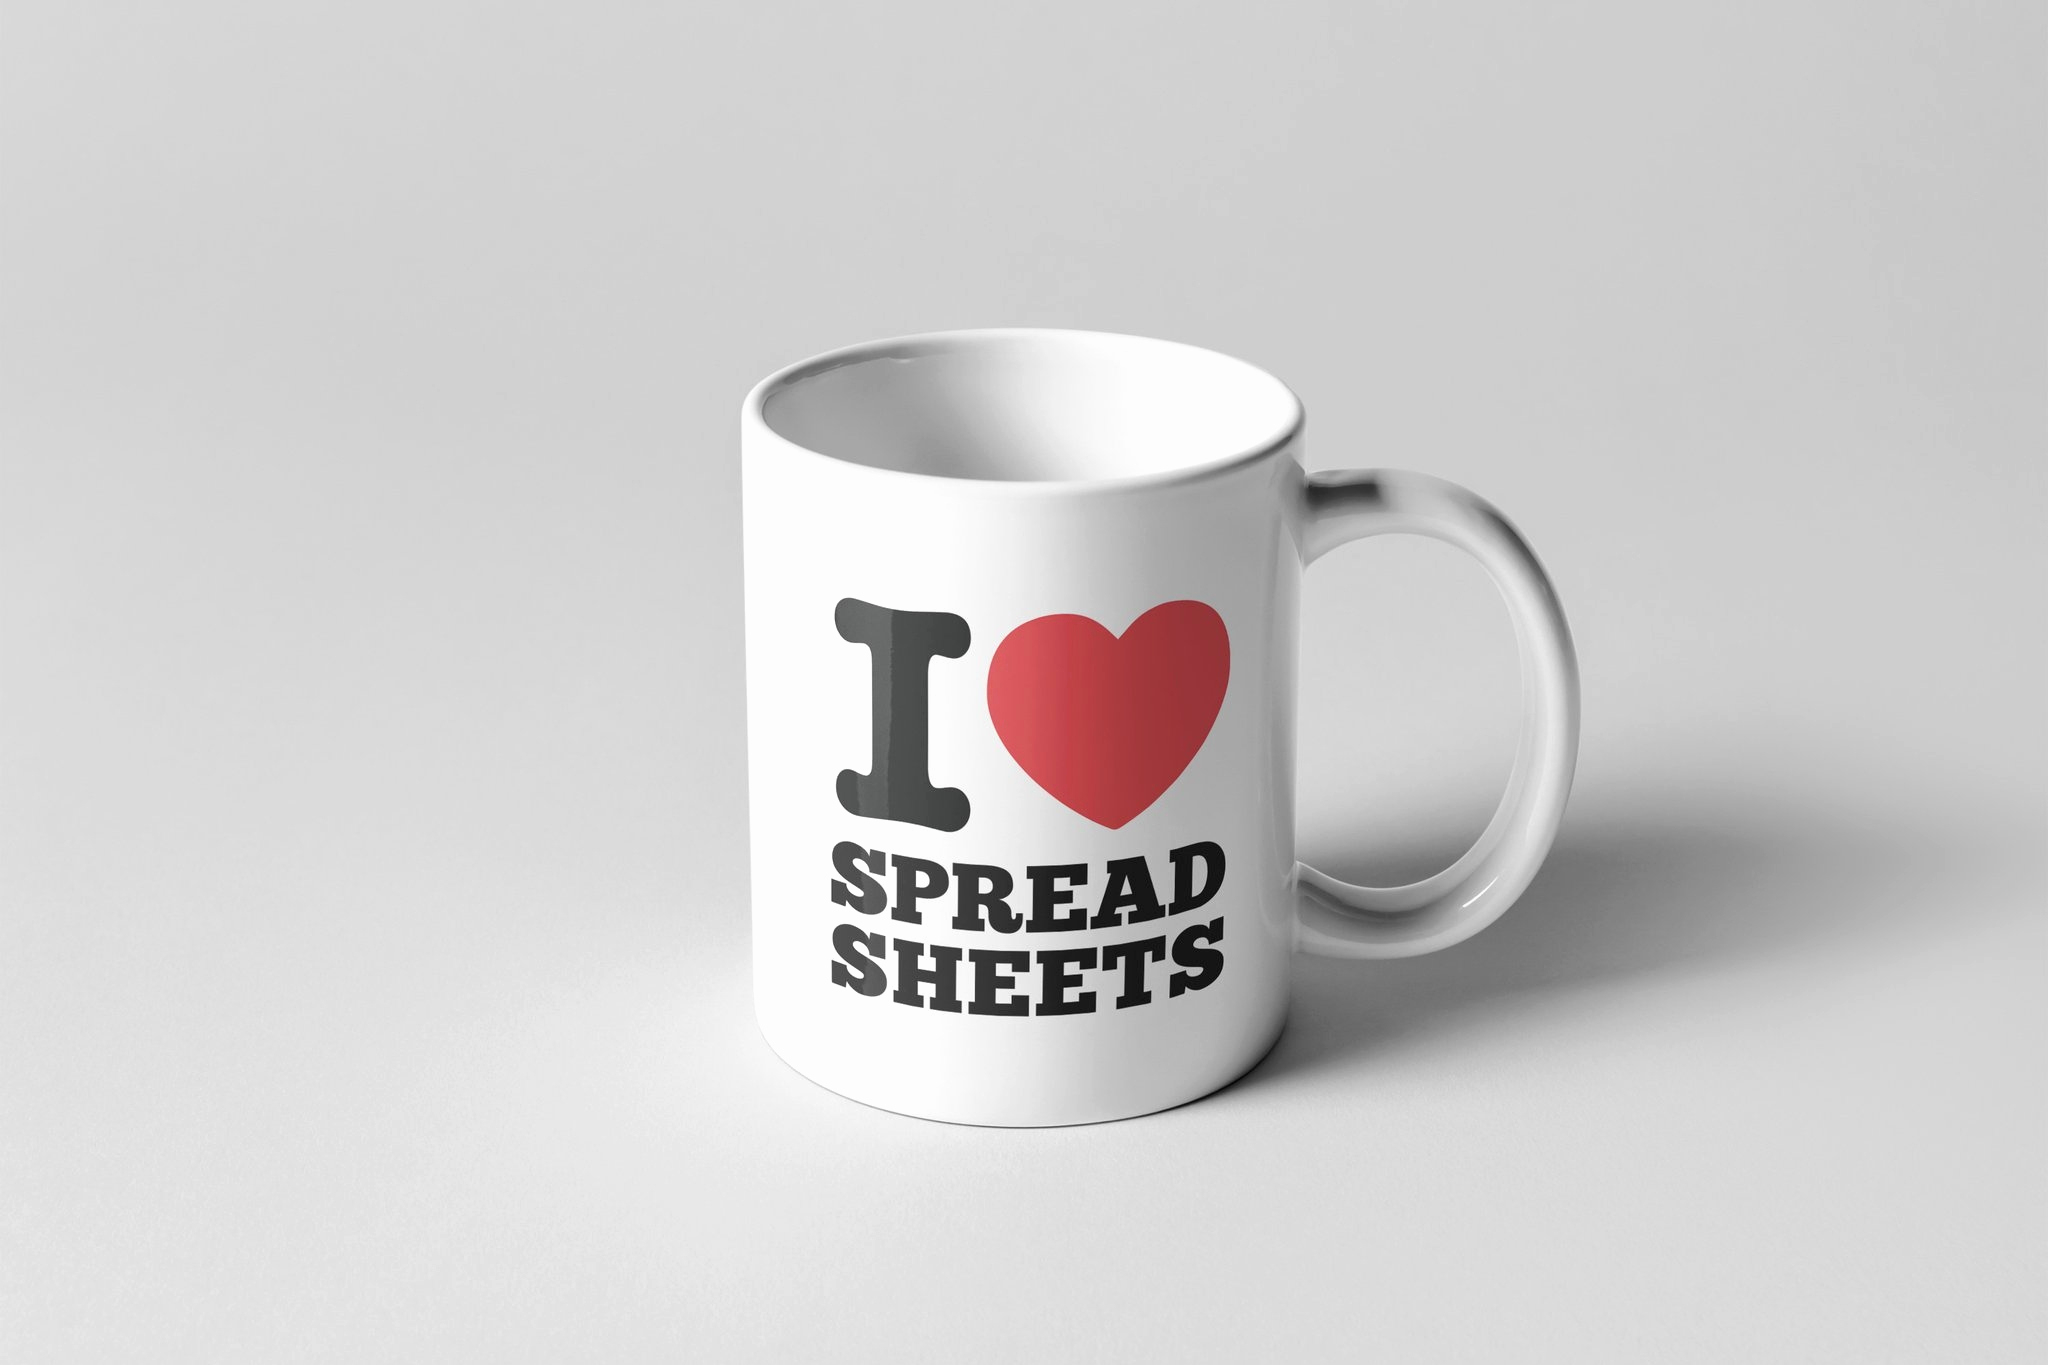 I Heart Spreadsheets Mug Best Of 50 Inspirational I Heart Inside I Heart Spreadsheets